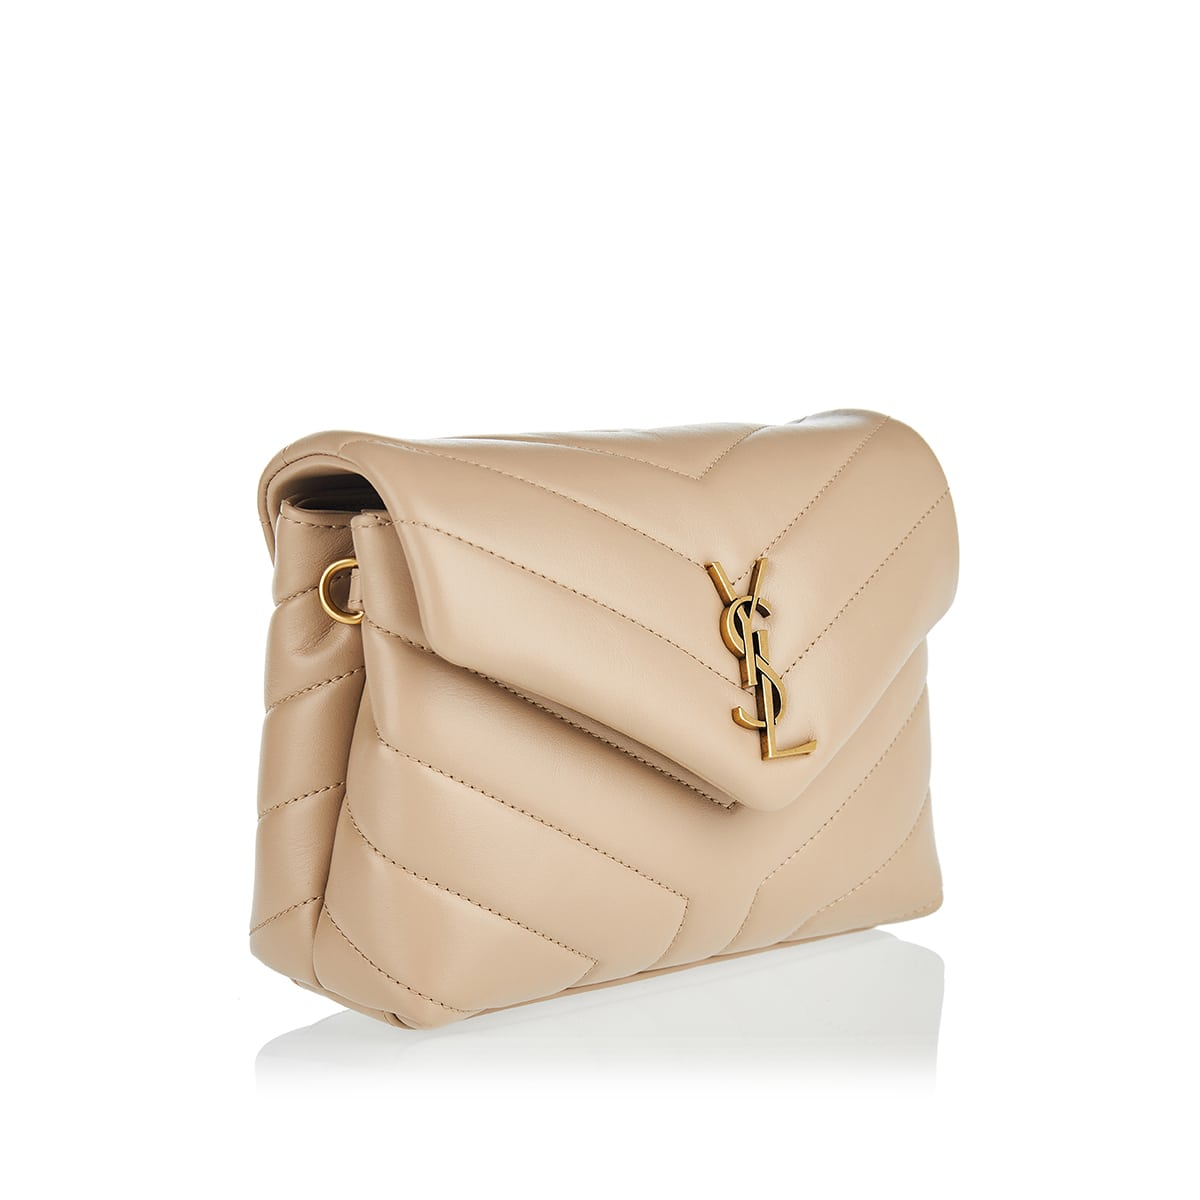 Loulou toy quilted leather bag